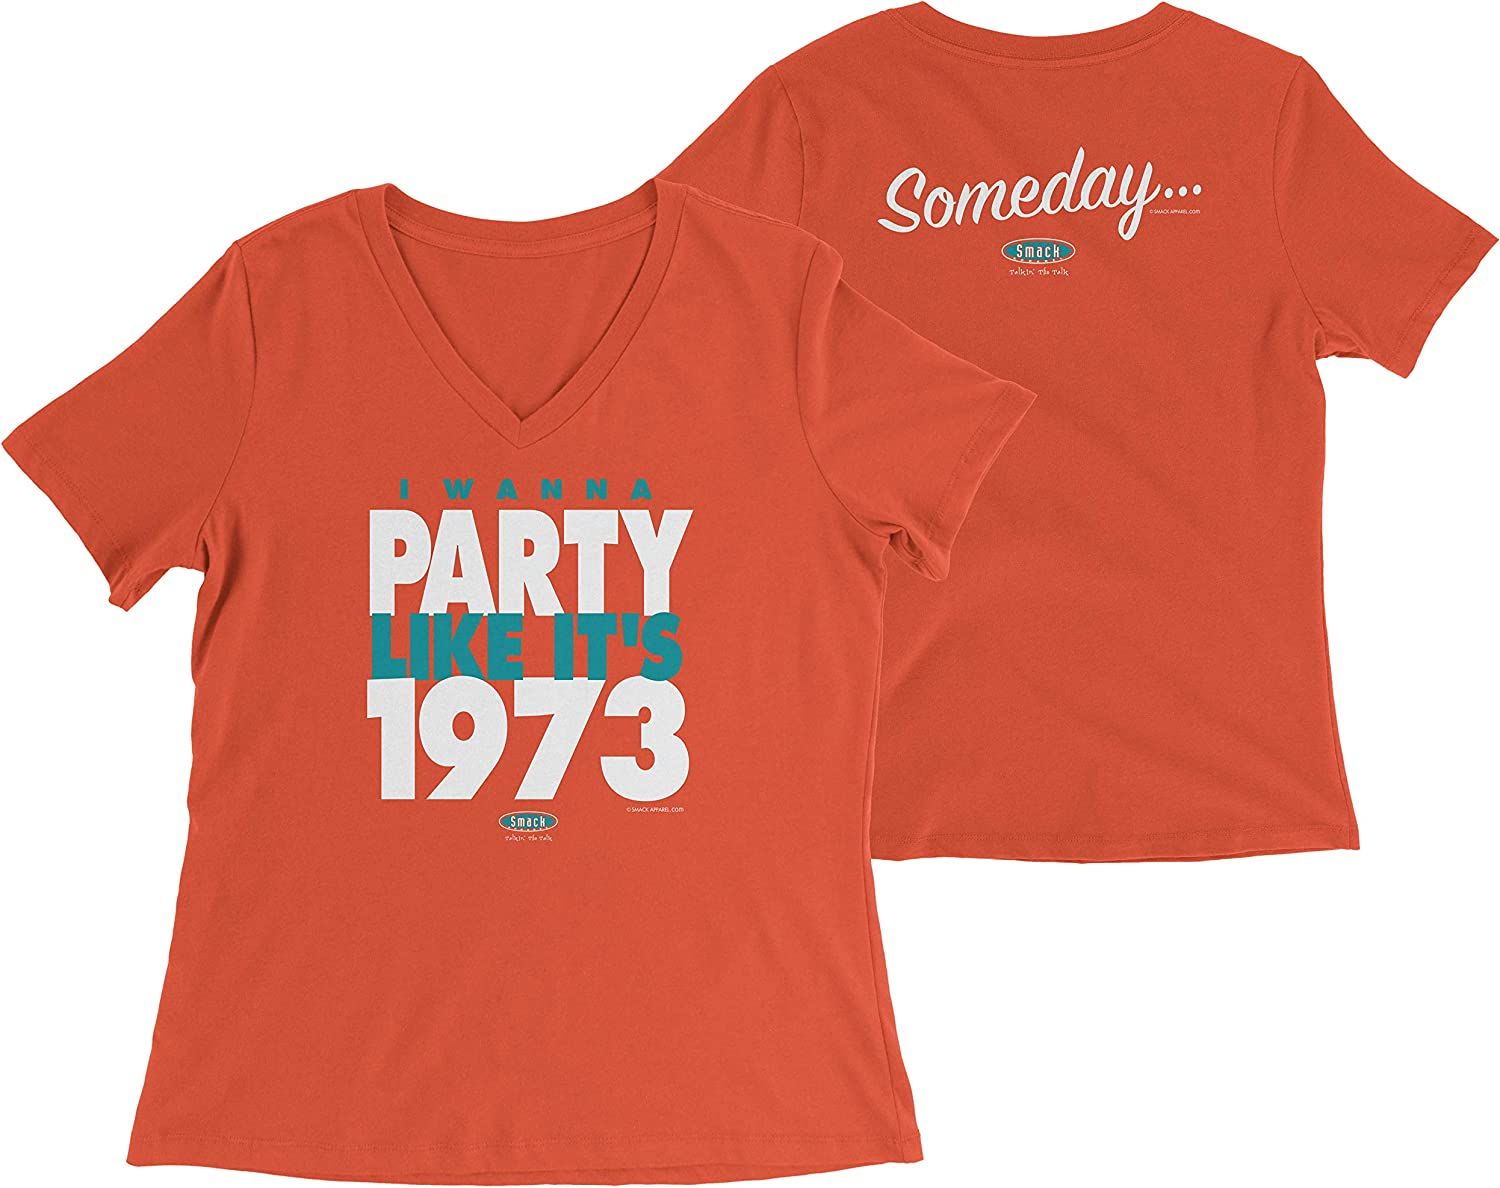 Smack Apparel Miami Football Fans Sm-3X Orange Ladies T-Shirt Someday/…I Wanna Party Like Its 1973